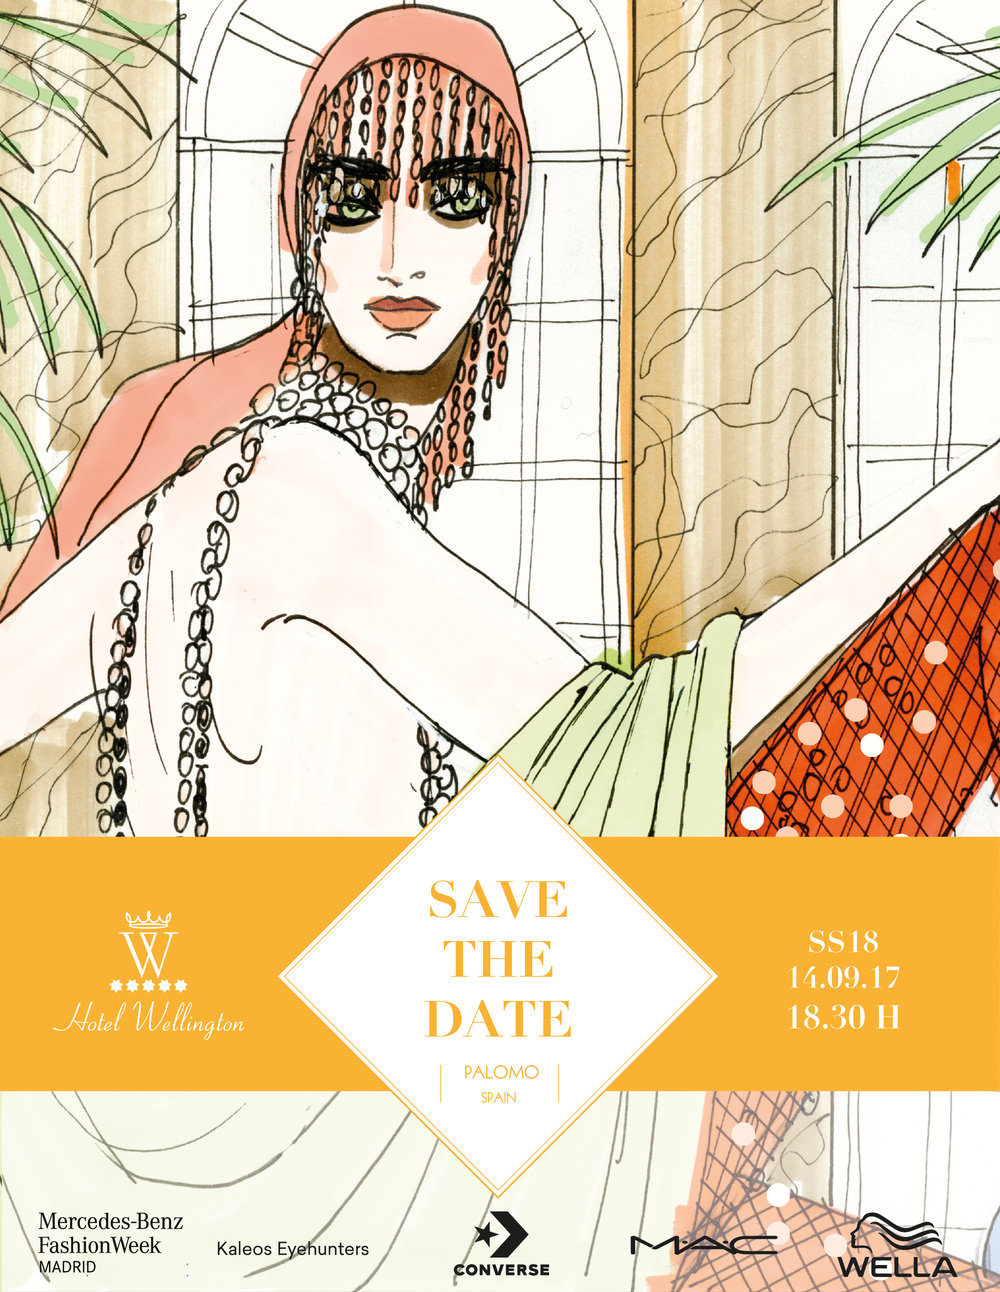 SAVE THE DATE HOTEL PALOMO.jpg